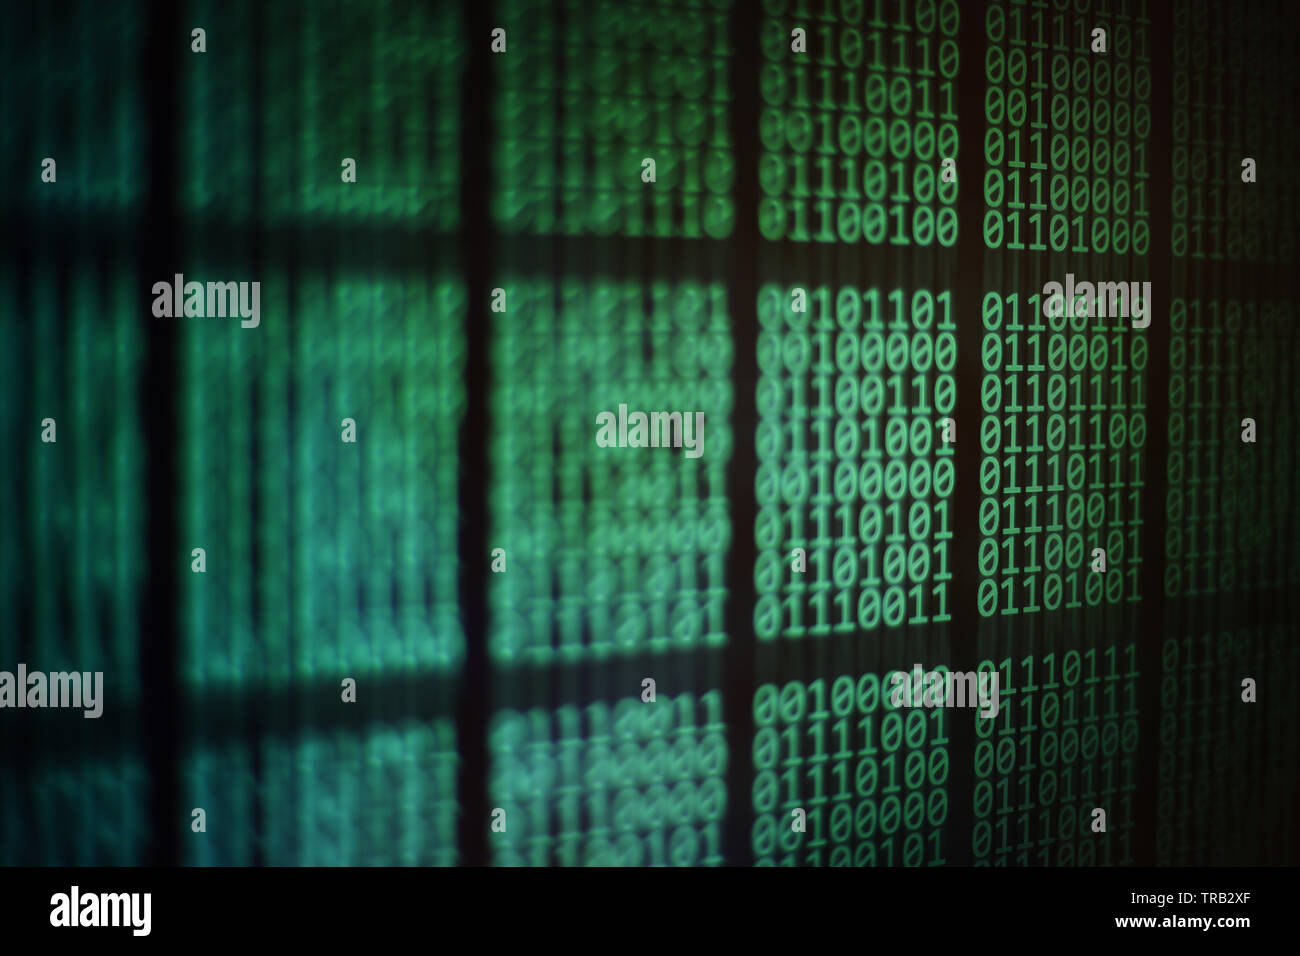 computer monitor displaying binary code. block of data on computer led panel screen. Blockchain, password, personal information, privacy and data tran - Stock Image